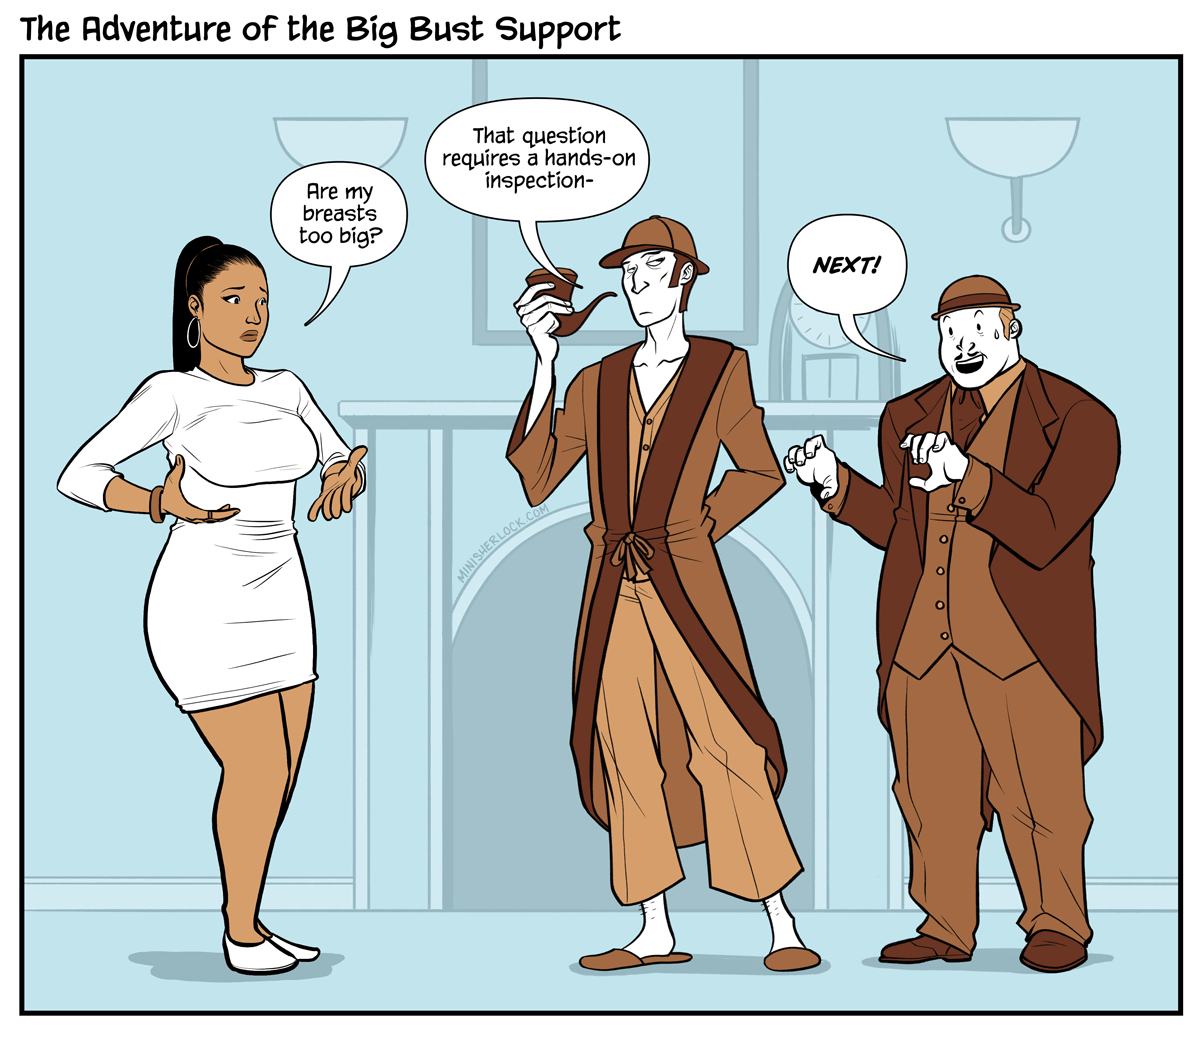 The Adventure of the Big Bust Support